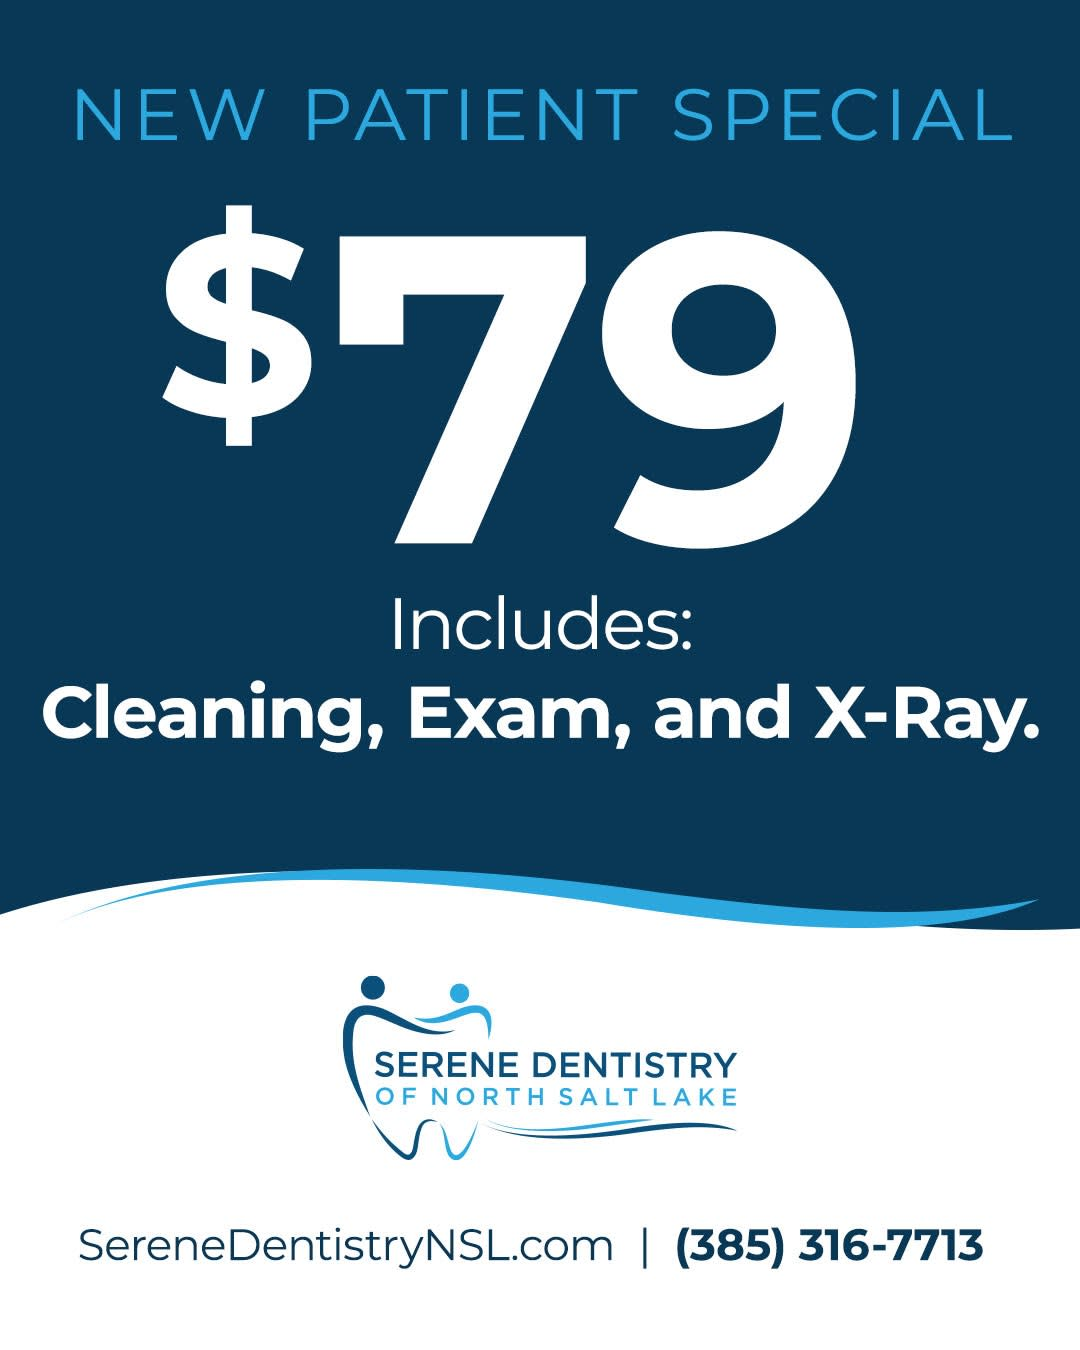 Serene Dentistry - New Patient Special $79